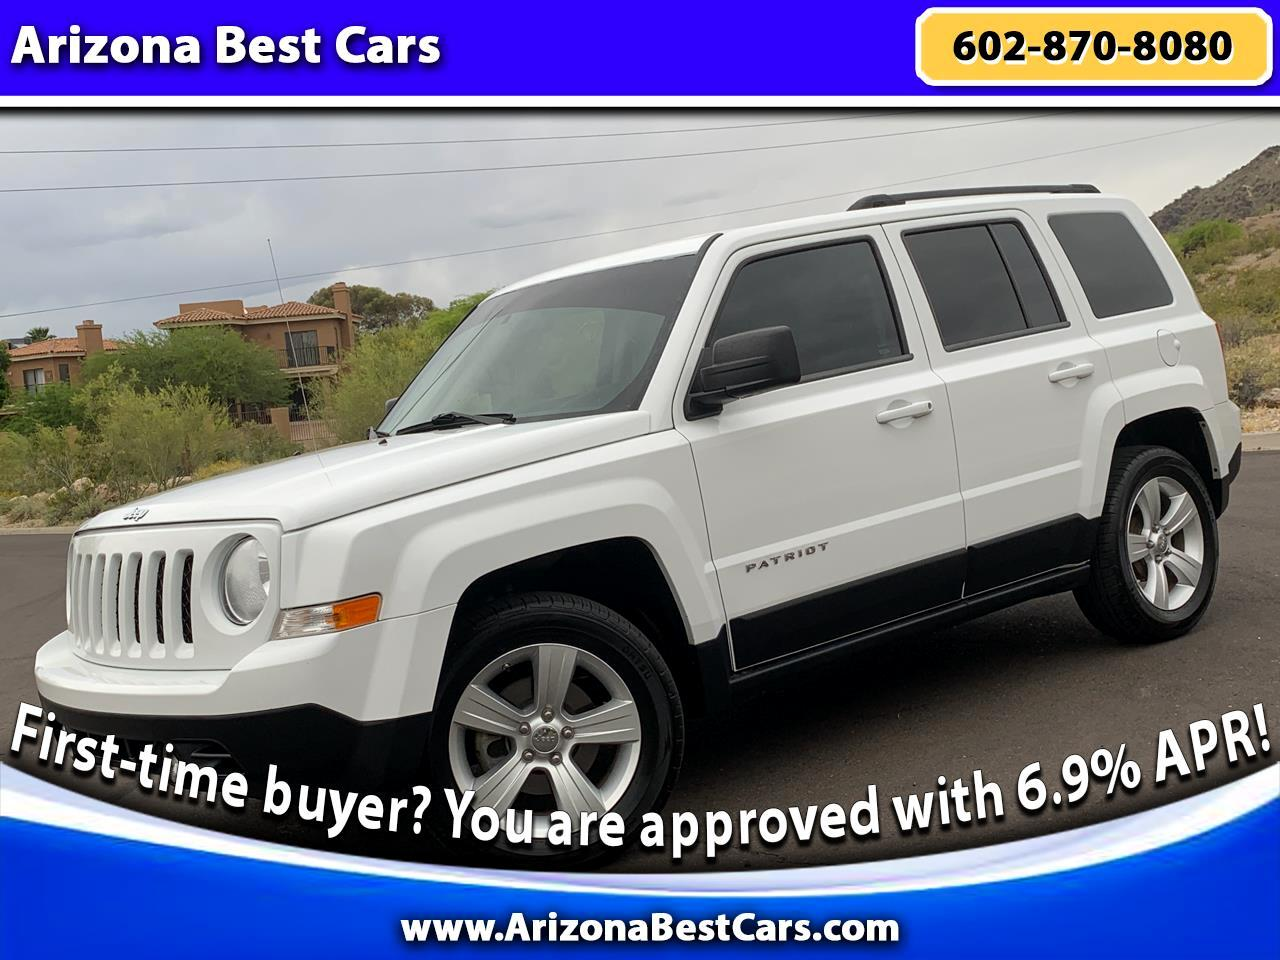 2011 Jeep Patriot FWD 4dr Latitude X